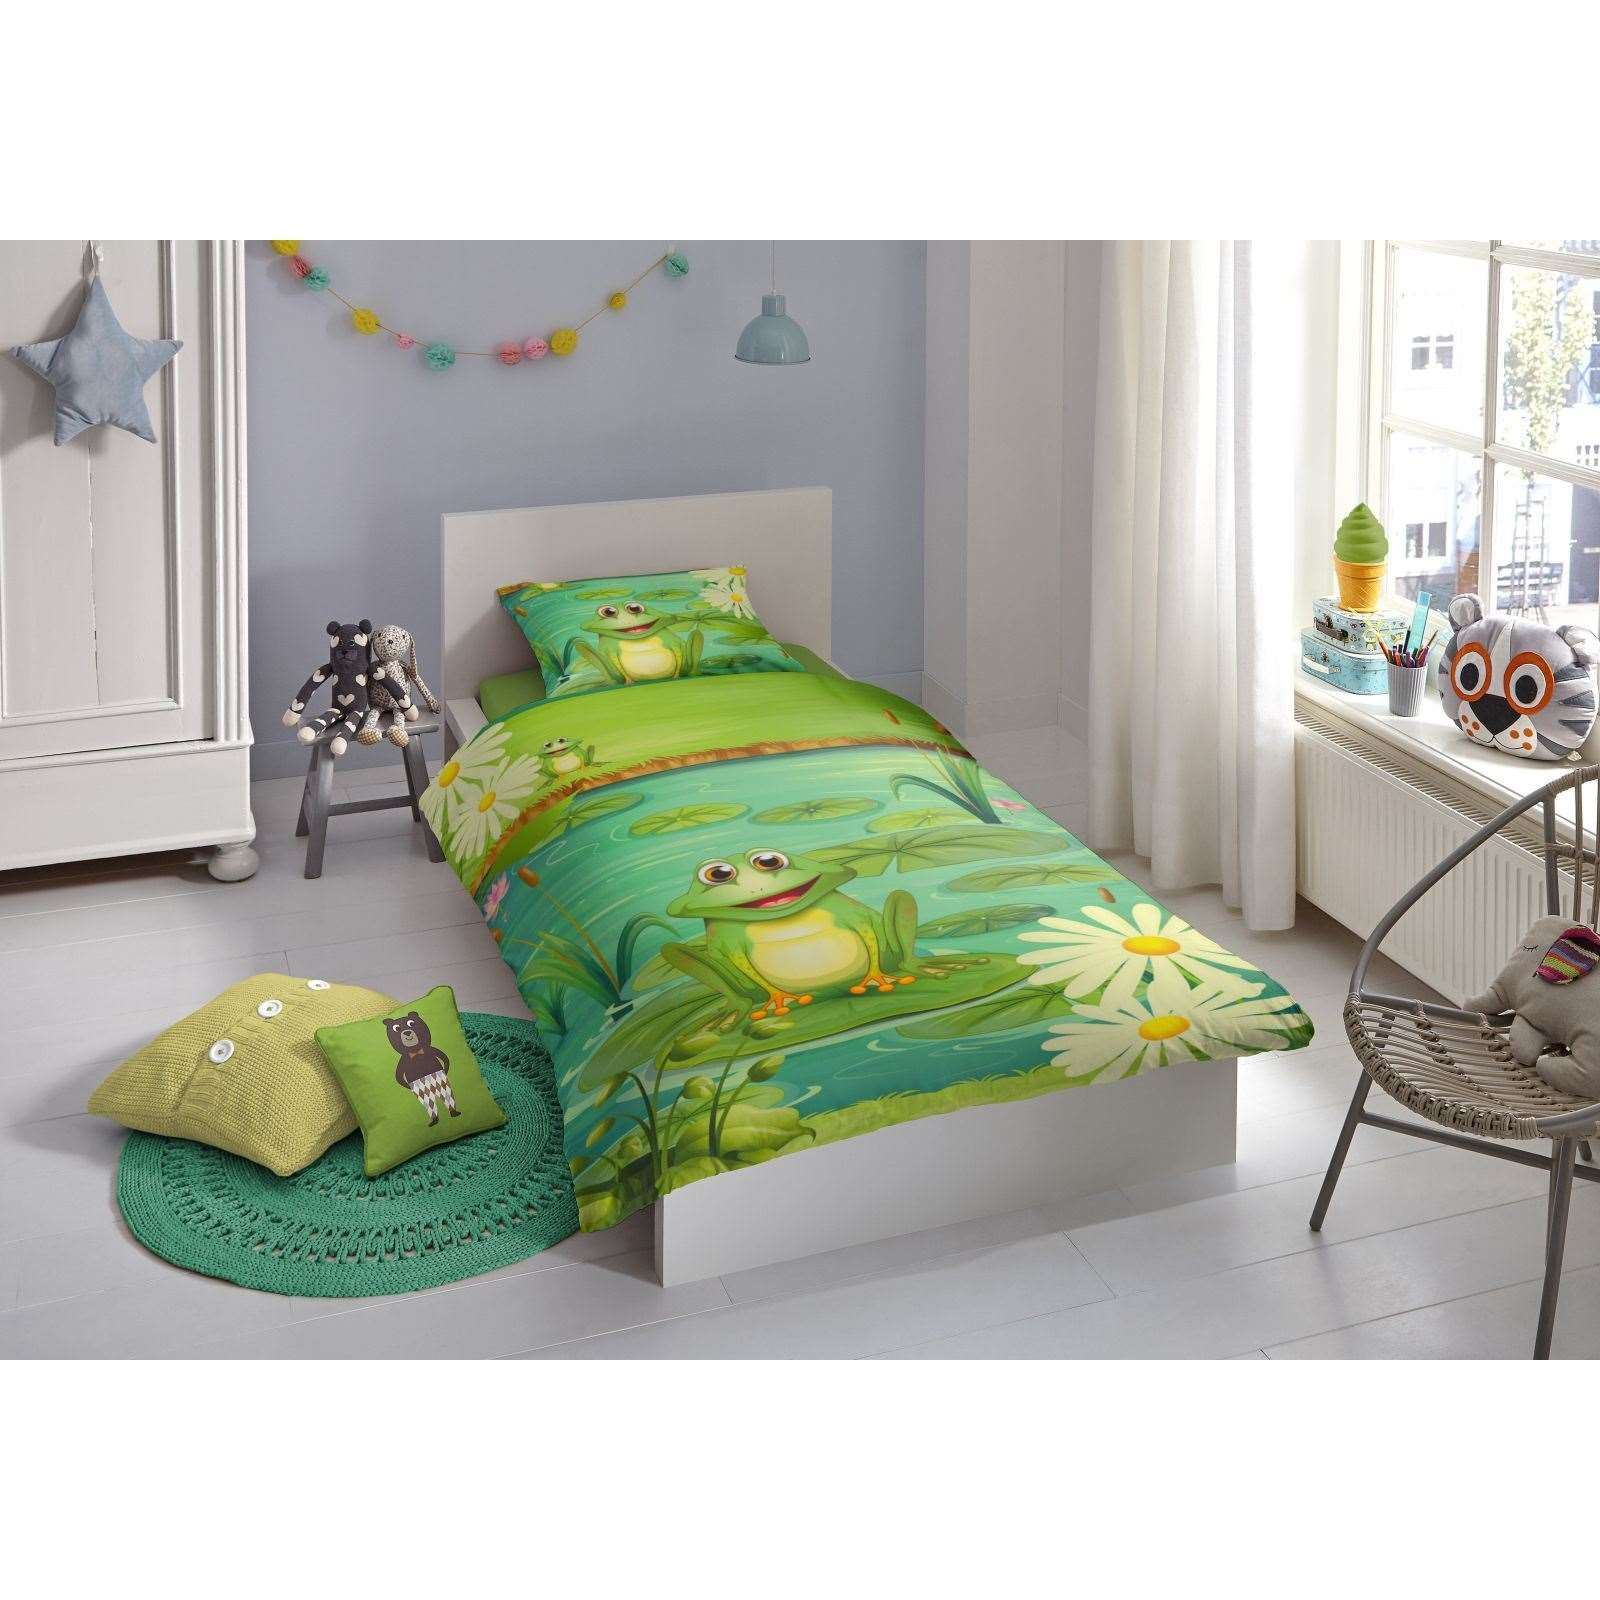 goodmorning frogs parure de lit vert brandalley. Black Bedroom Furniture Sets. Home Design Ideas